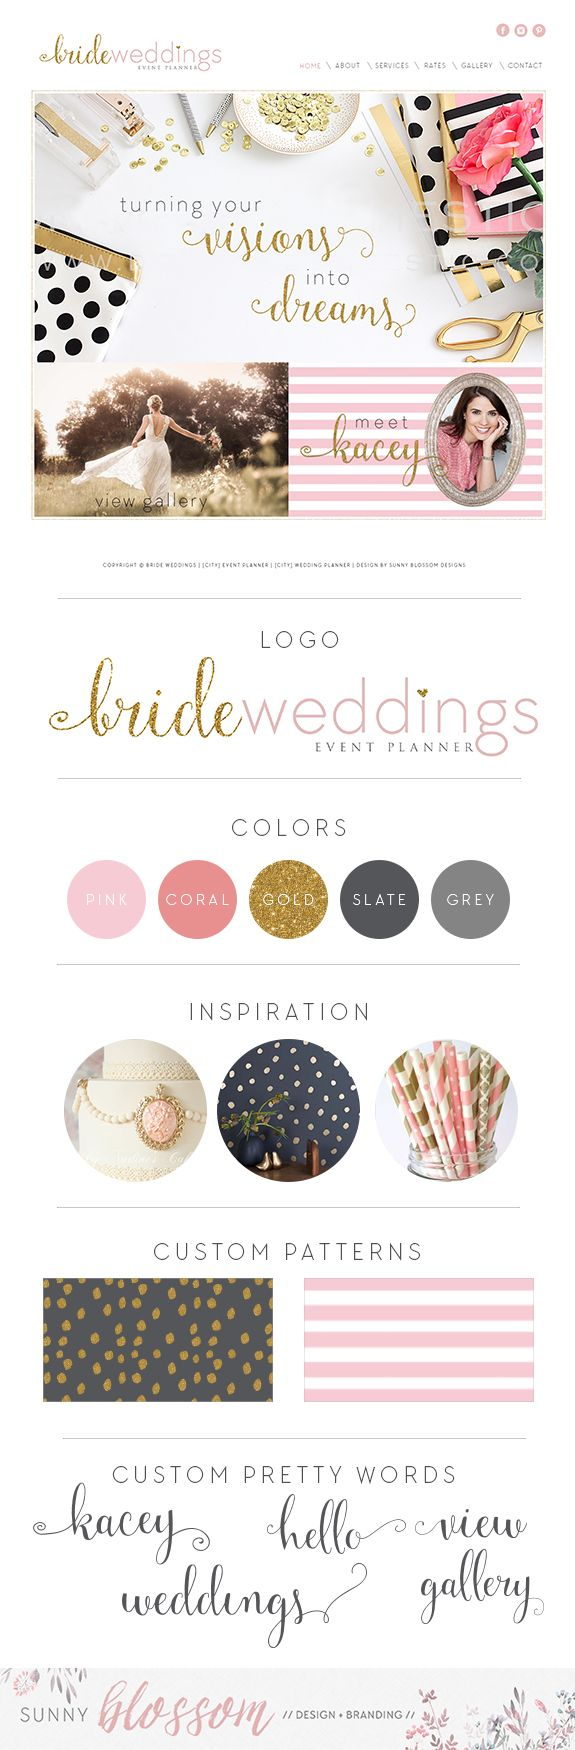 Custom website design, Website design ideas, wedding planner website…